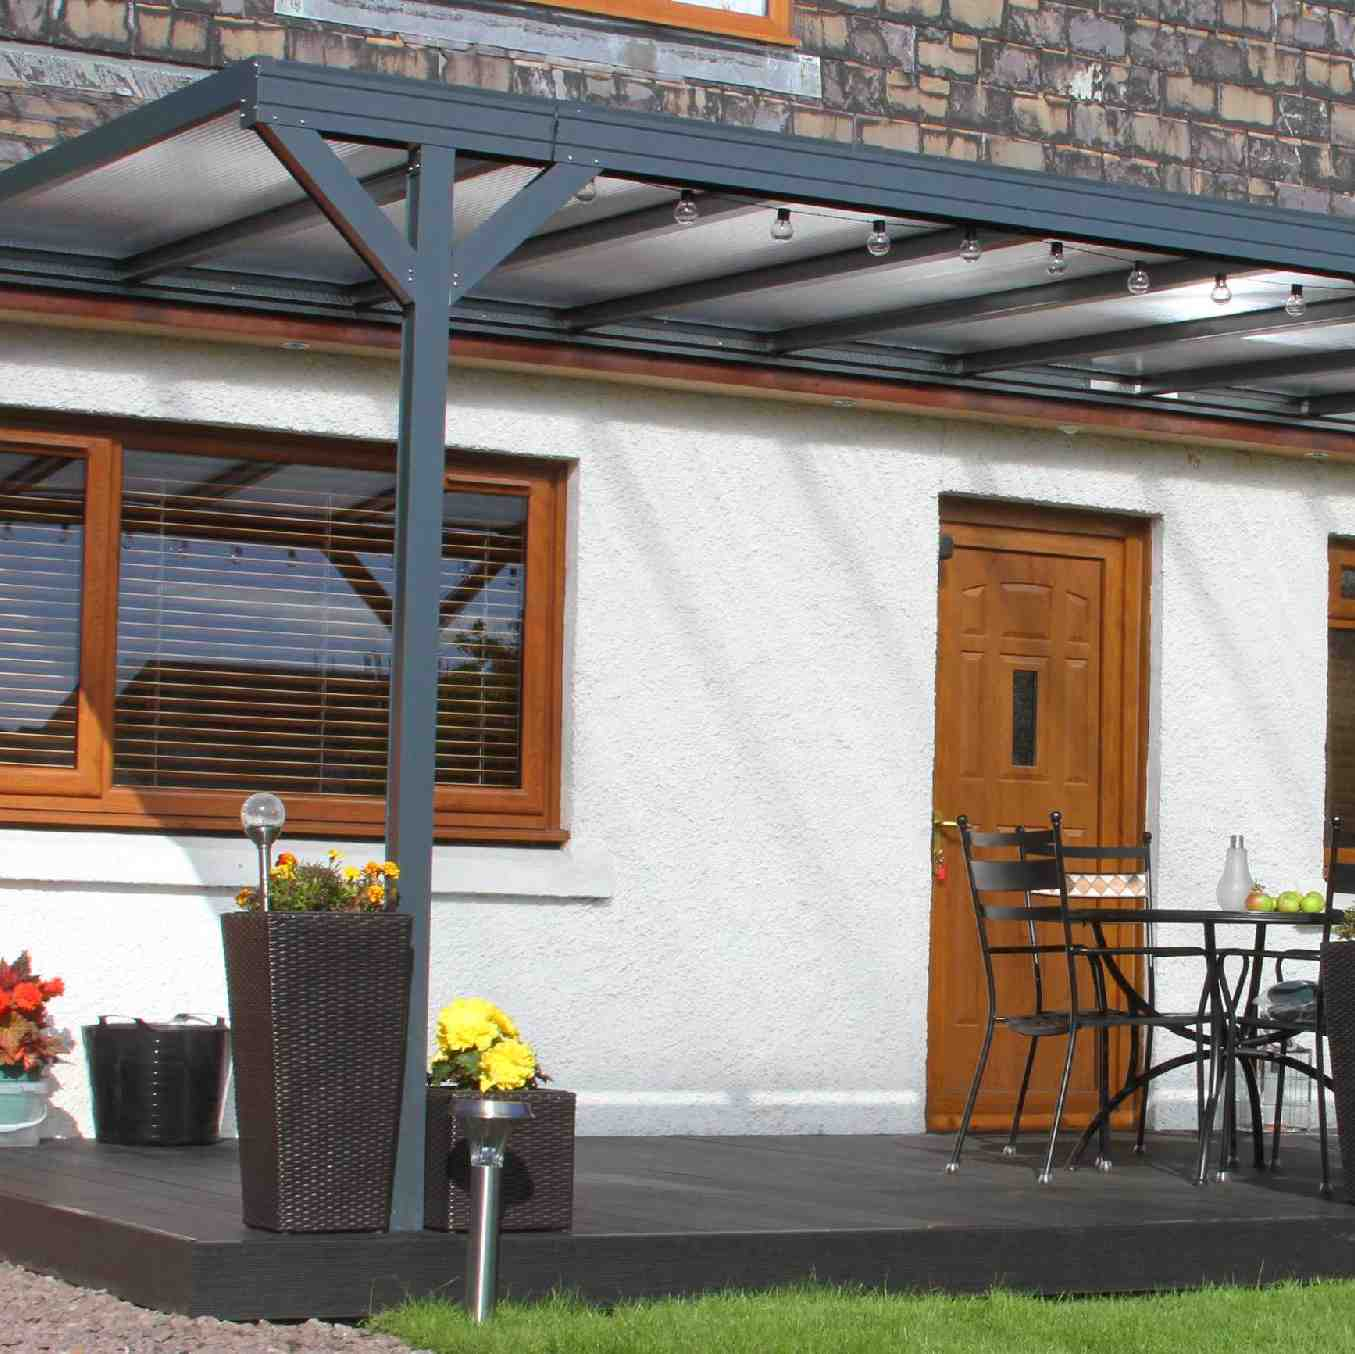 Omega Verandah, Anthracite Grey, 16mm Polycarbonate Glazing - 7.0m (W) x 4.0m (P), (4) Supporting Posts